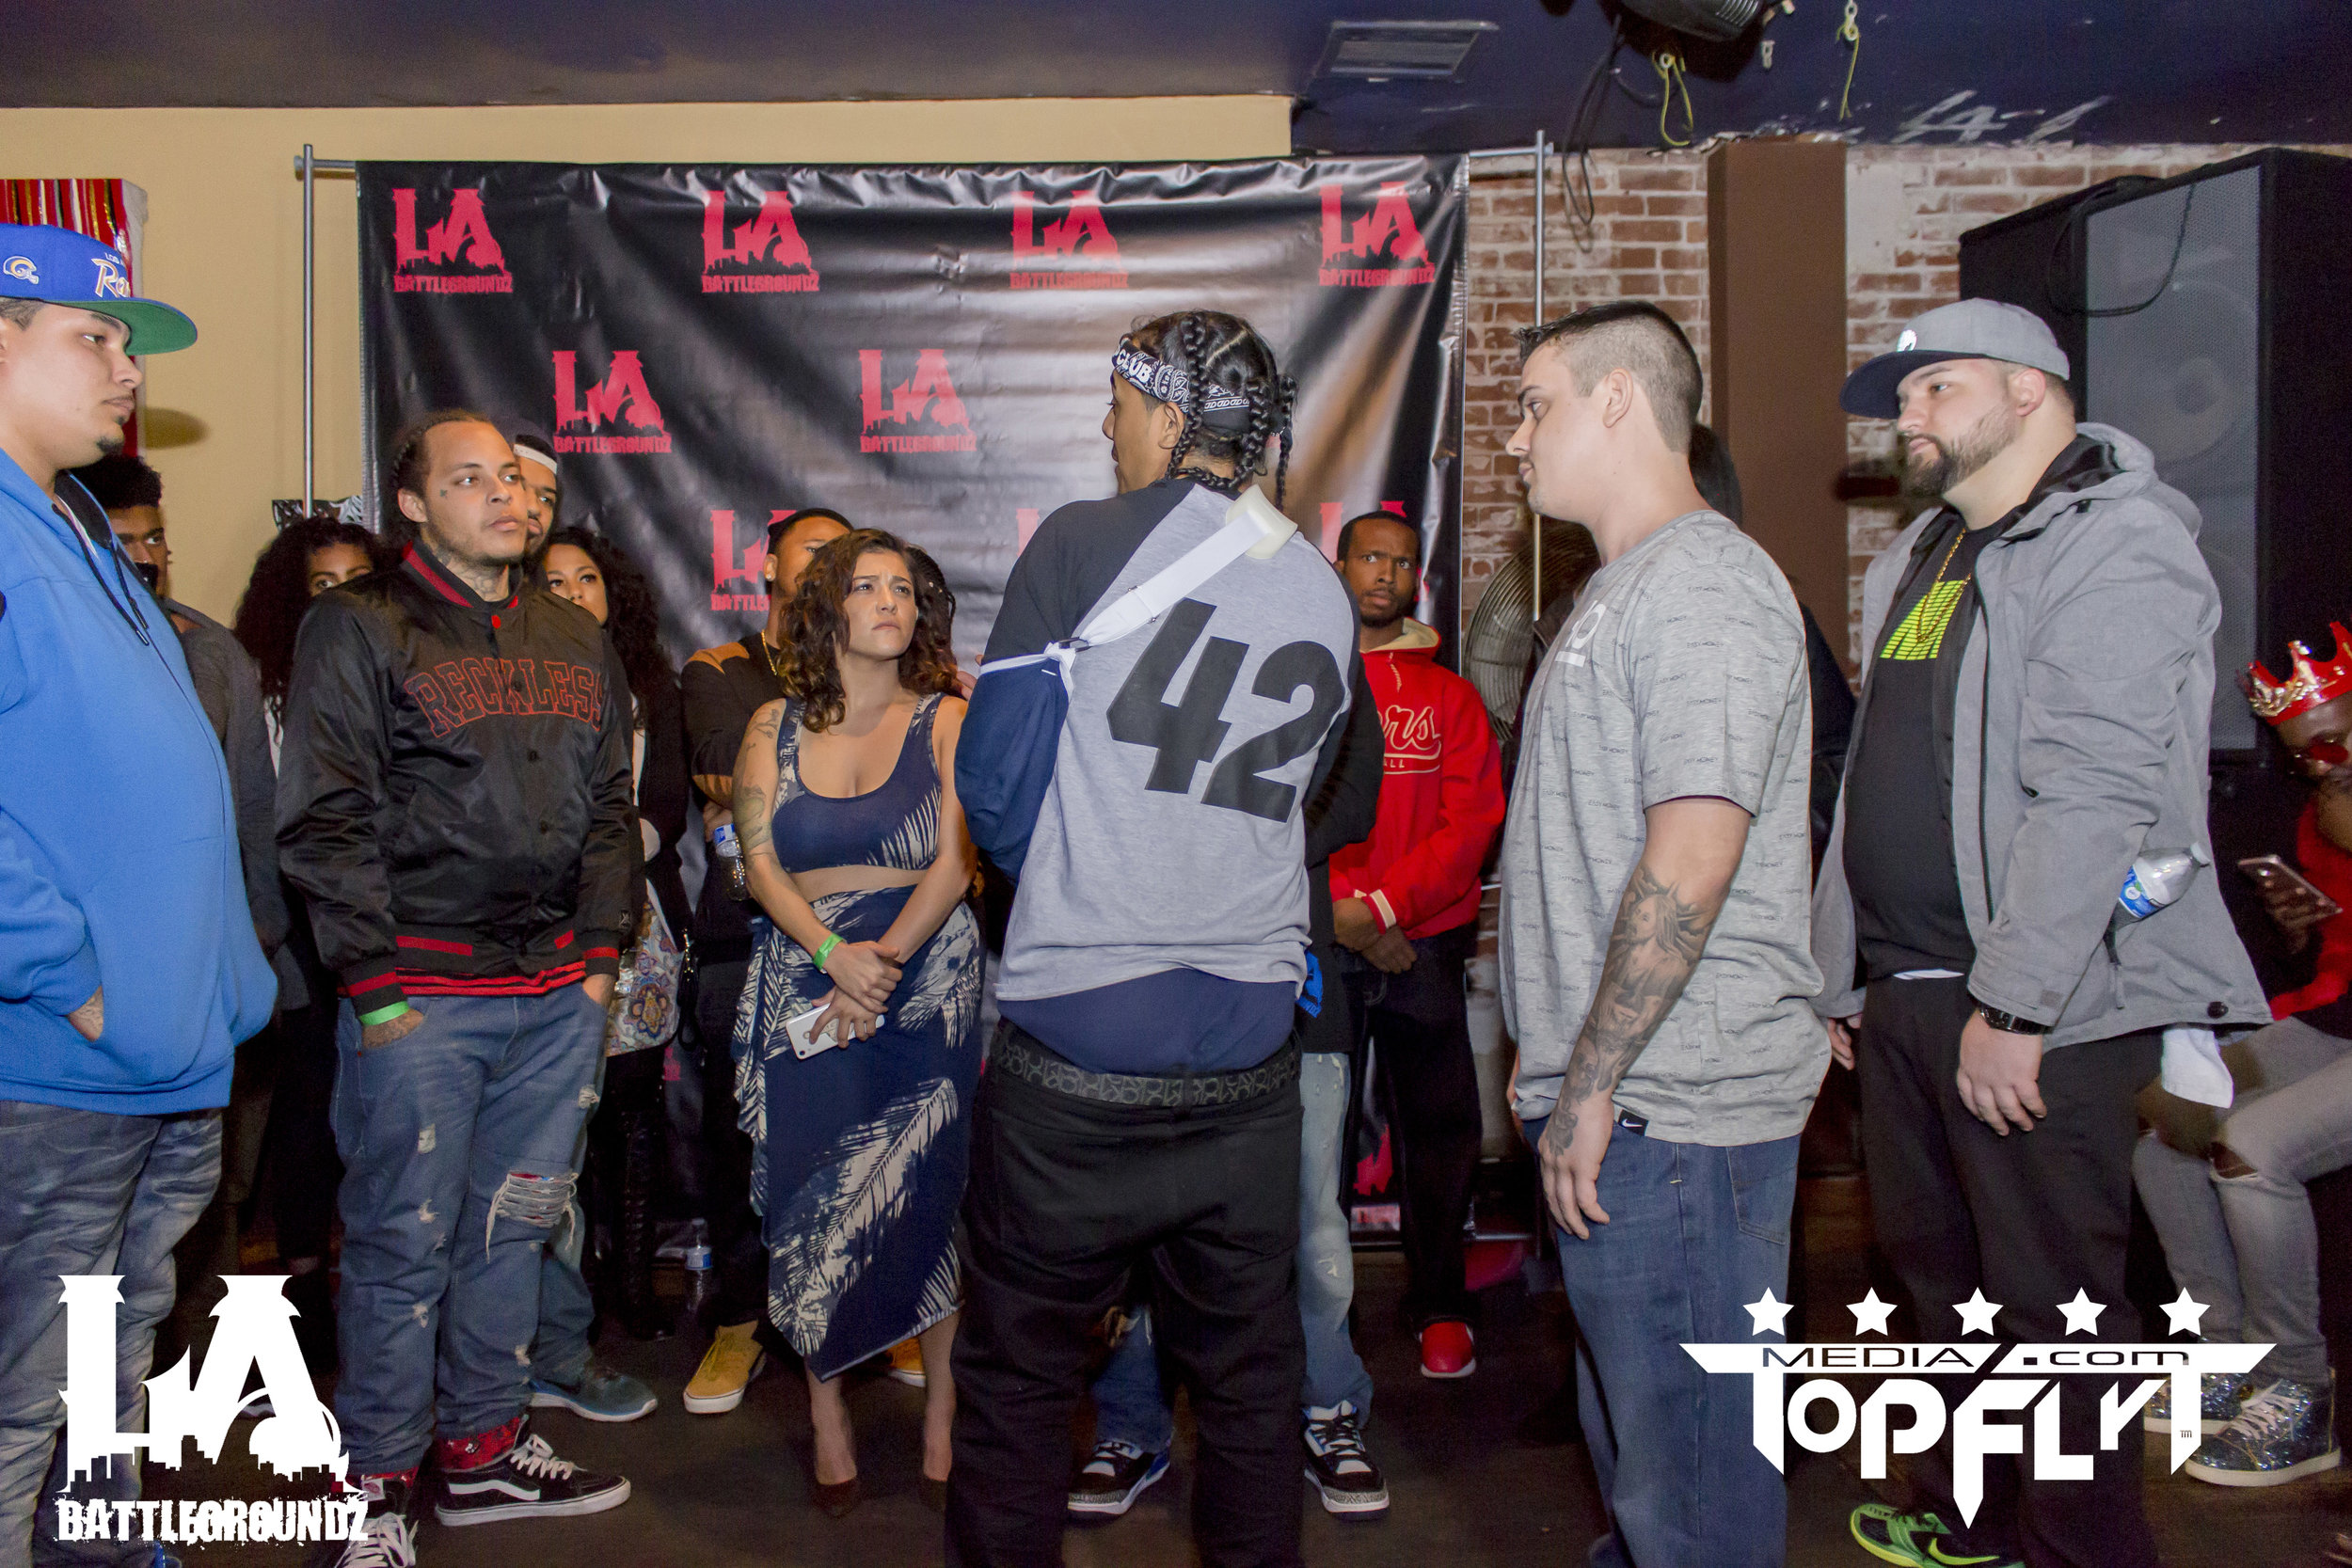 LA Battlegroundz - Decembarfest - The Christening_68.jpg